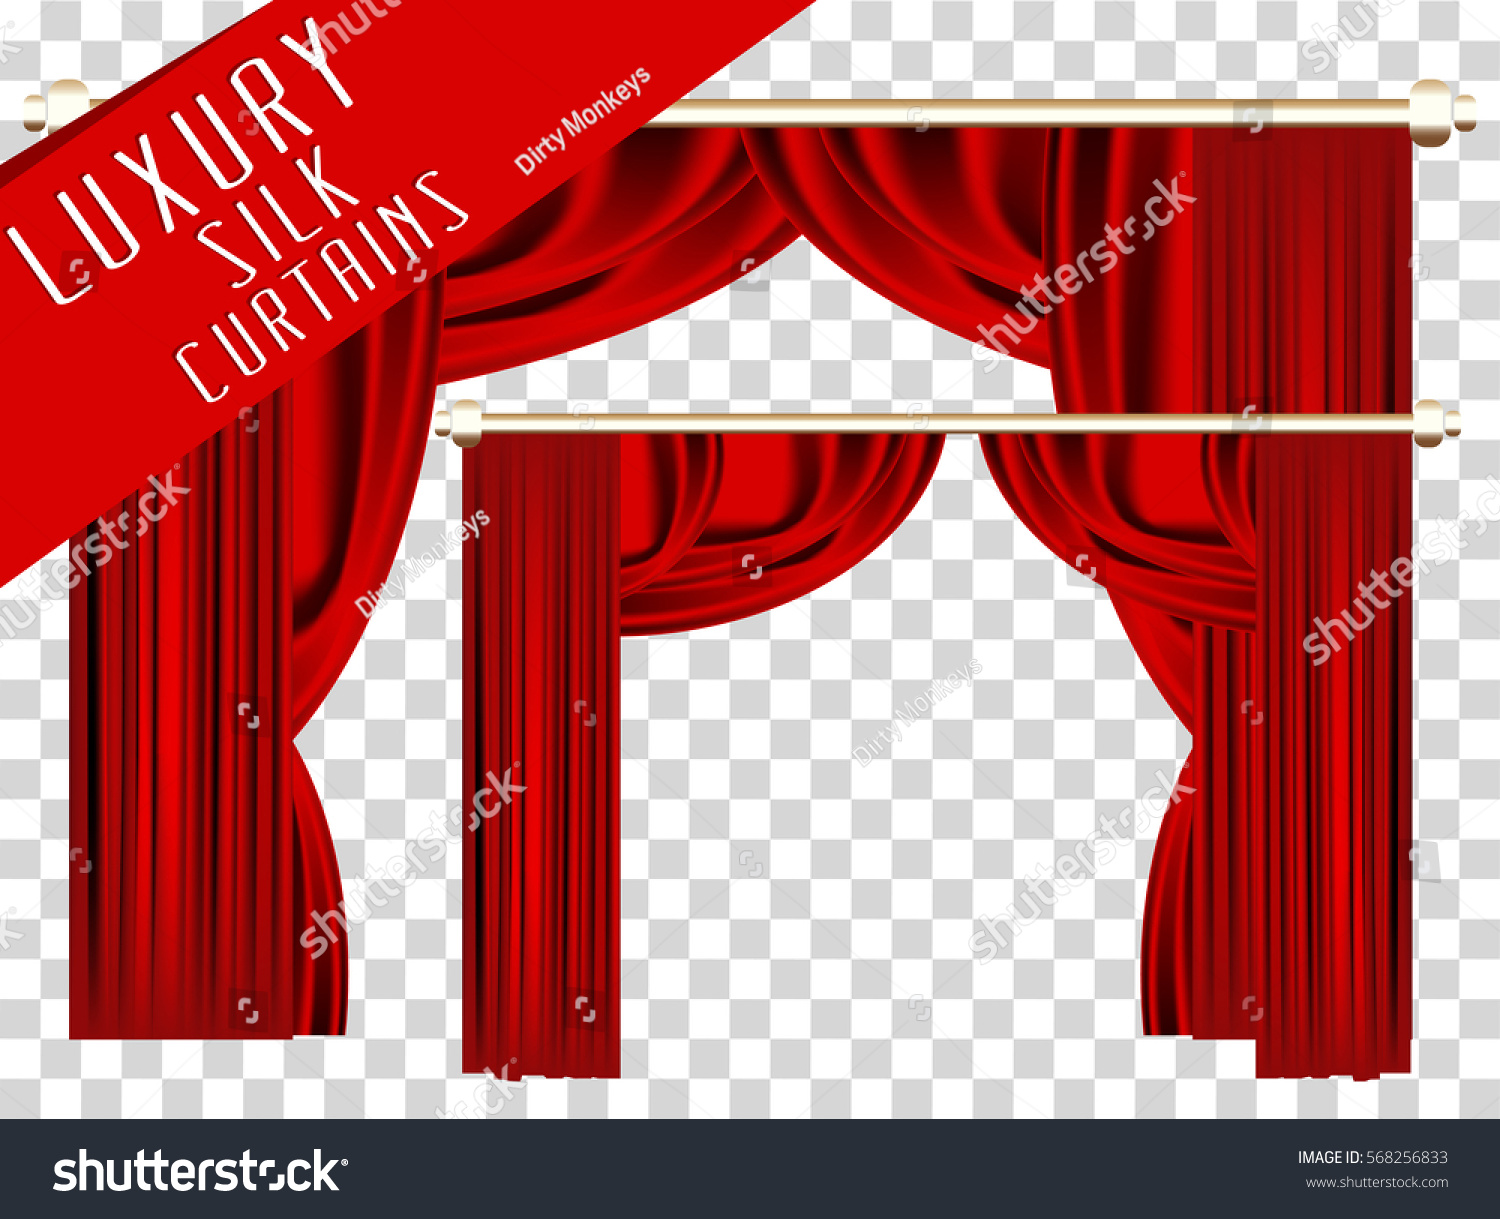 two theatrical trends red curtain or side pict inspiration fascinating stage tfile of uncategorized and for the curtains left silk velvet